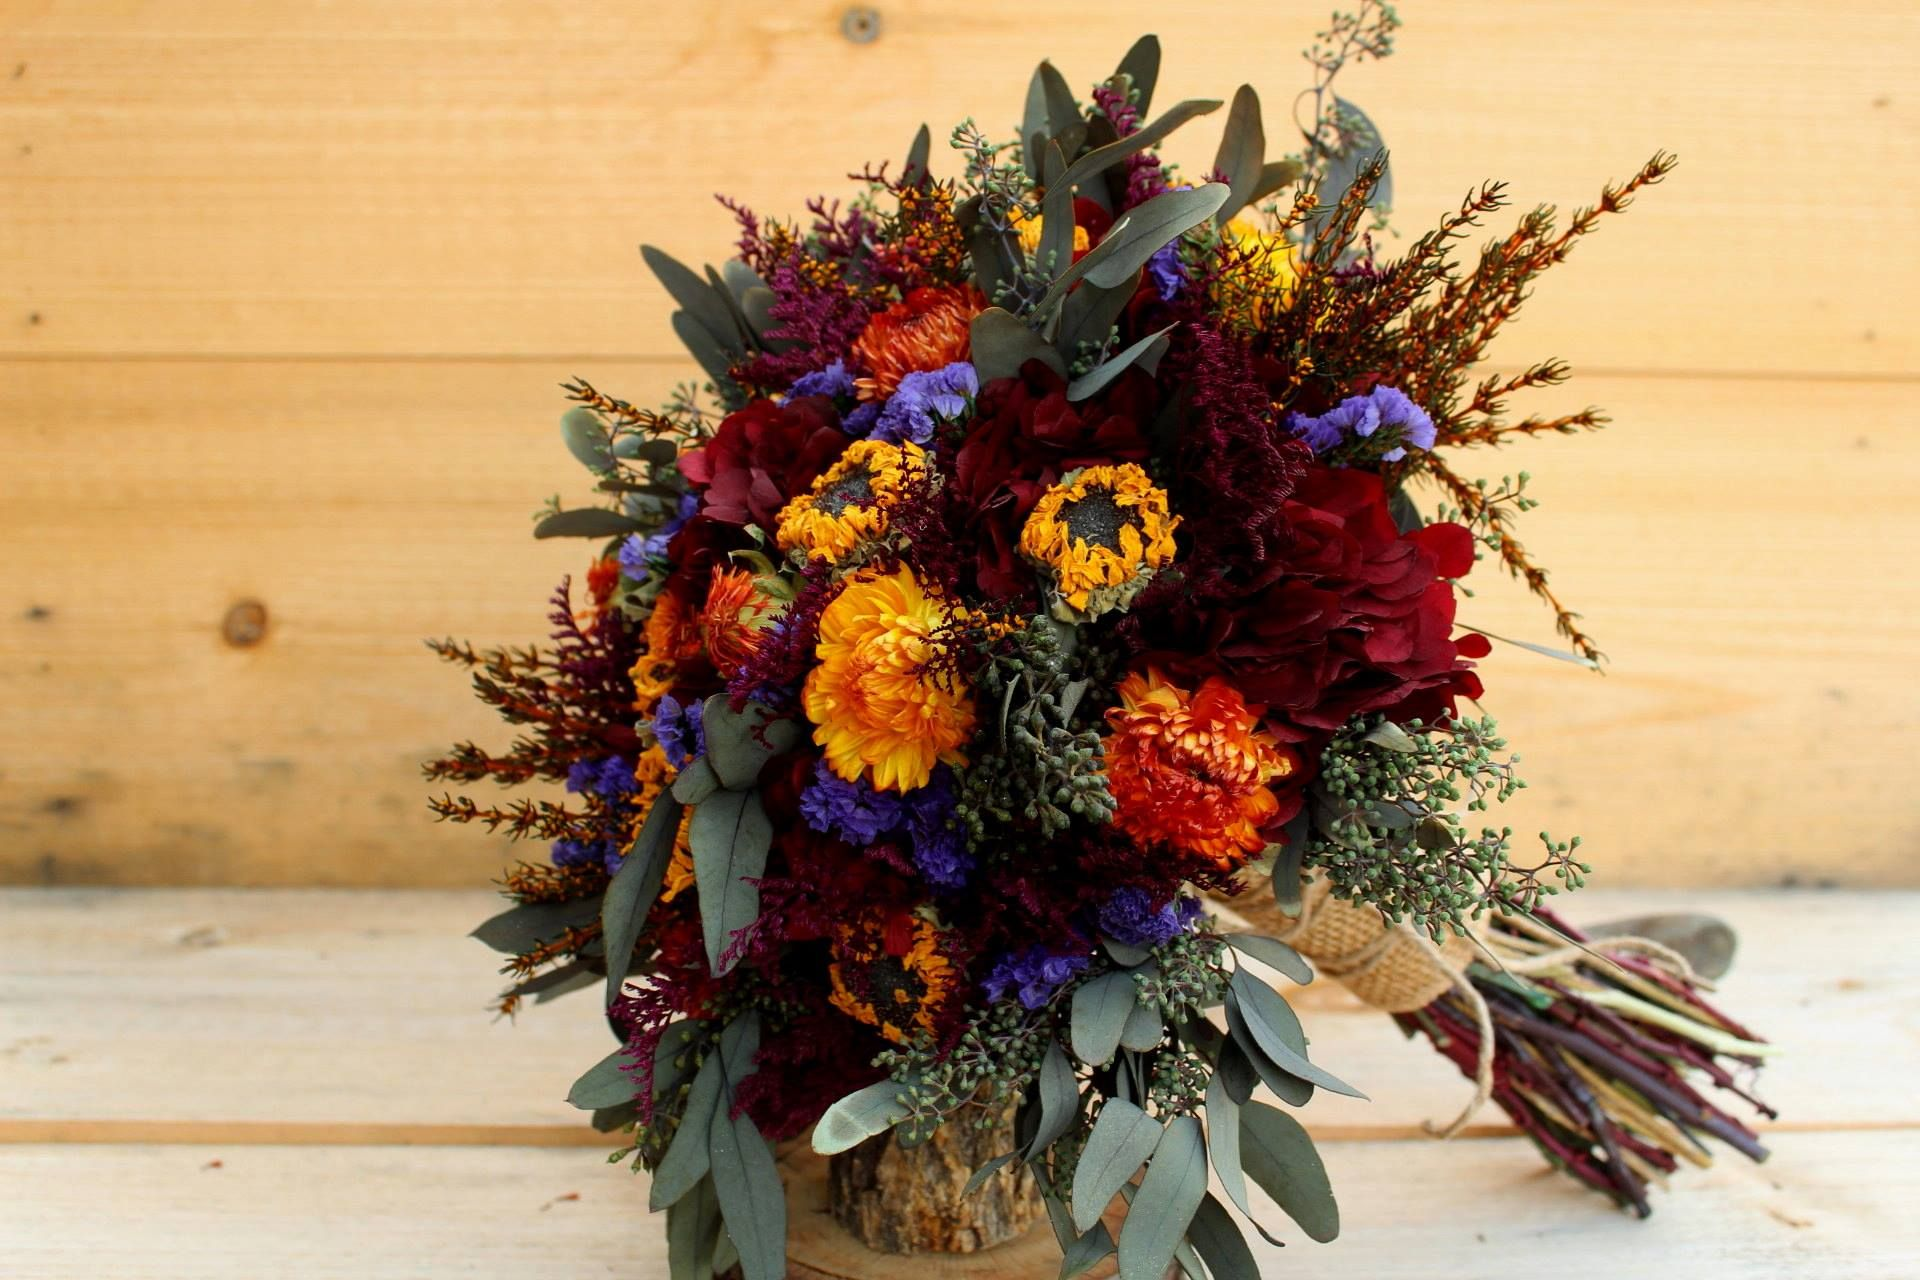 Autumn wedding bouquet with dried mini sunflowers burgundy autumn dried flower wedding bouquet with dried mini sunflowers burgundy hydrangea orange and purple spray flowers and seeded eucalyptus izmirmasajfo Choice Image